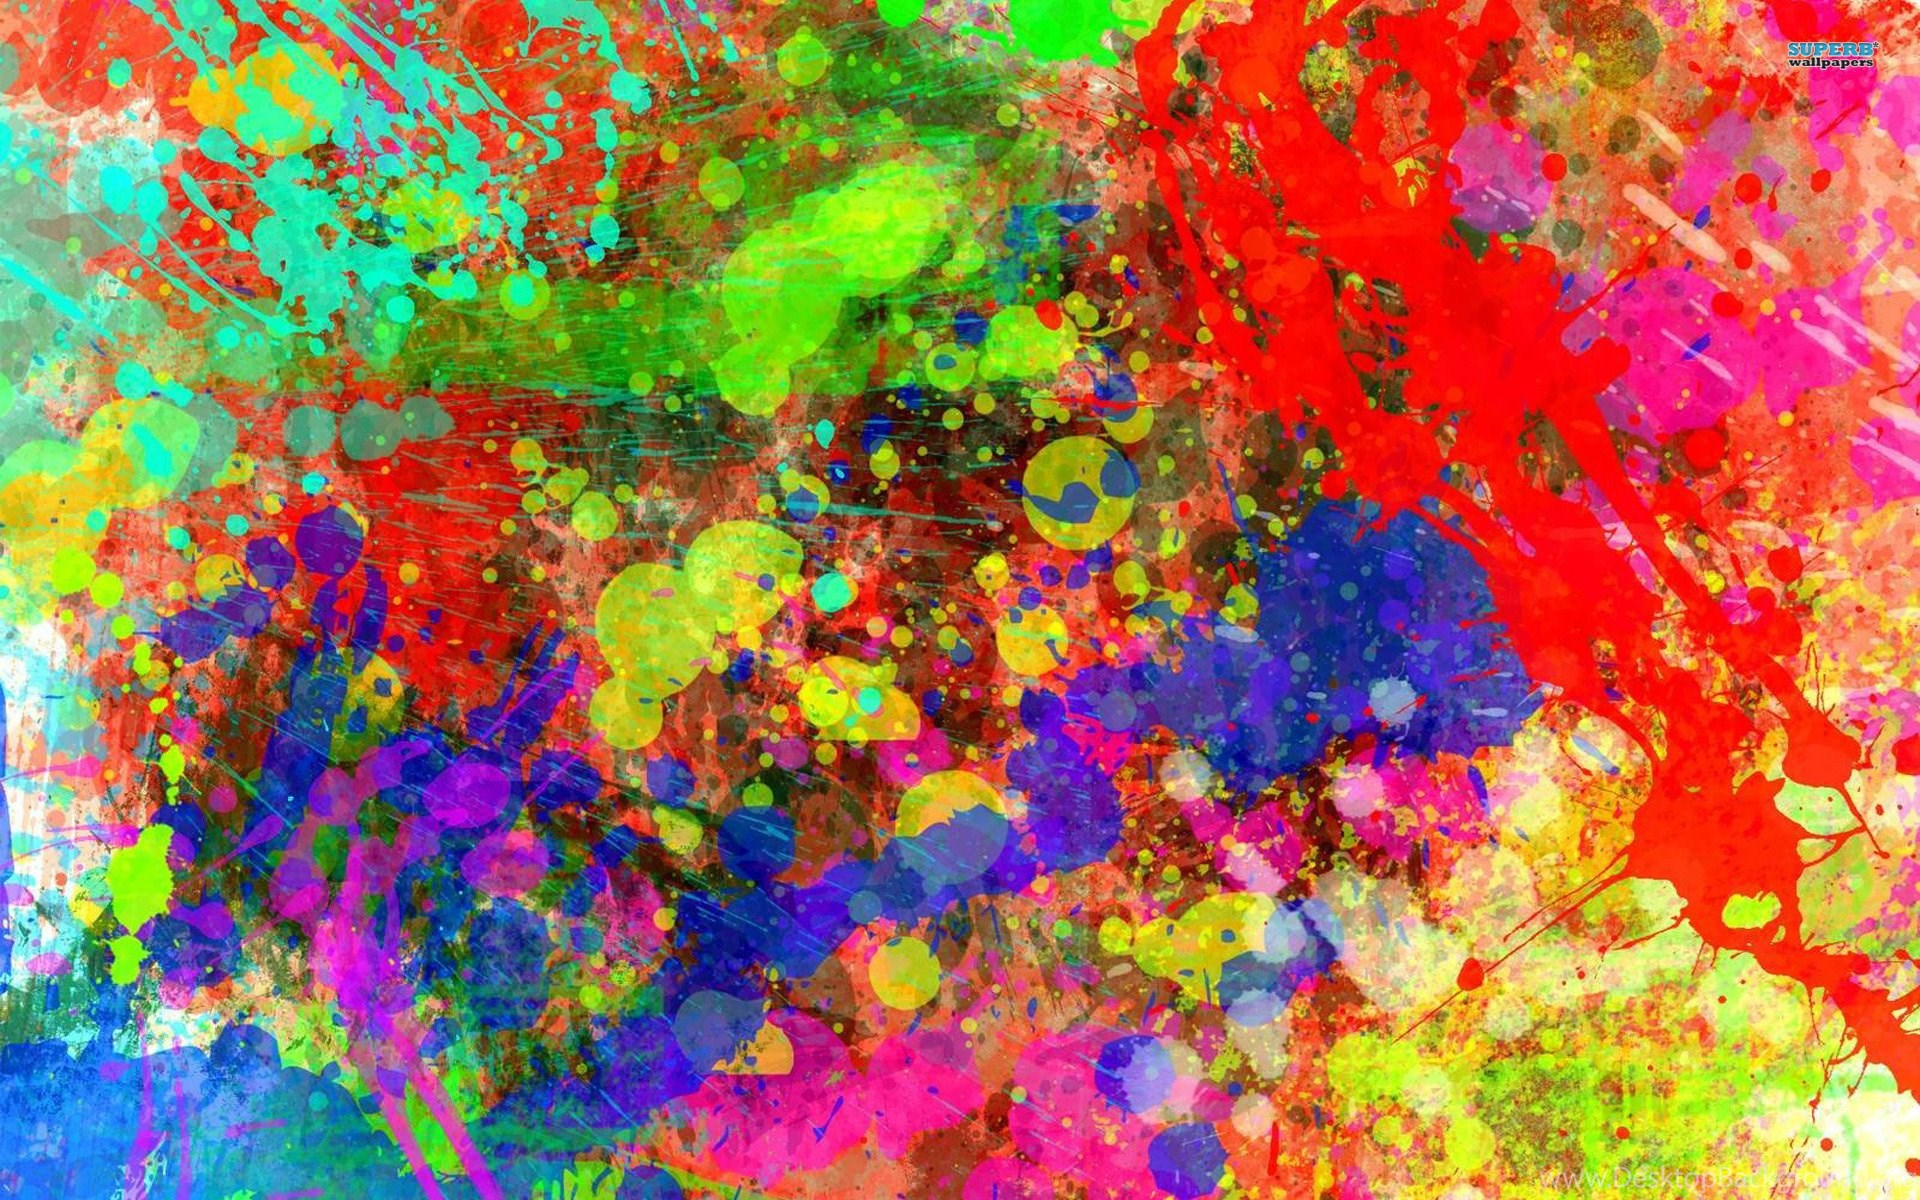 Paint Splatter Wallpapers Desktop Background